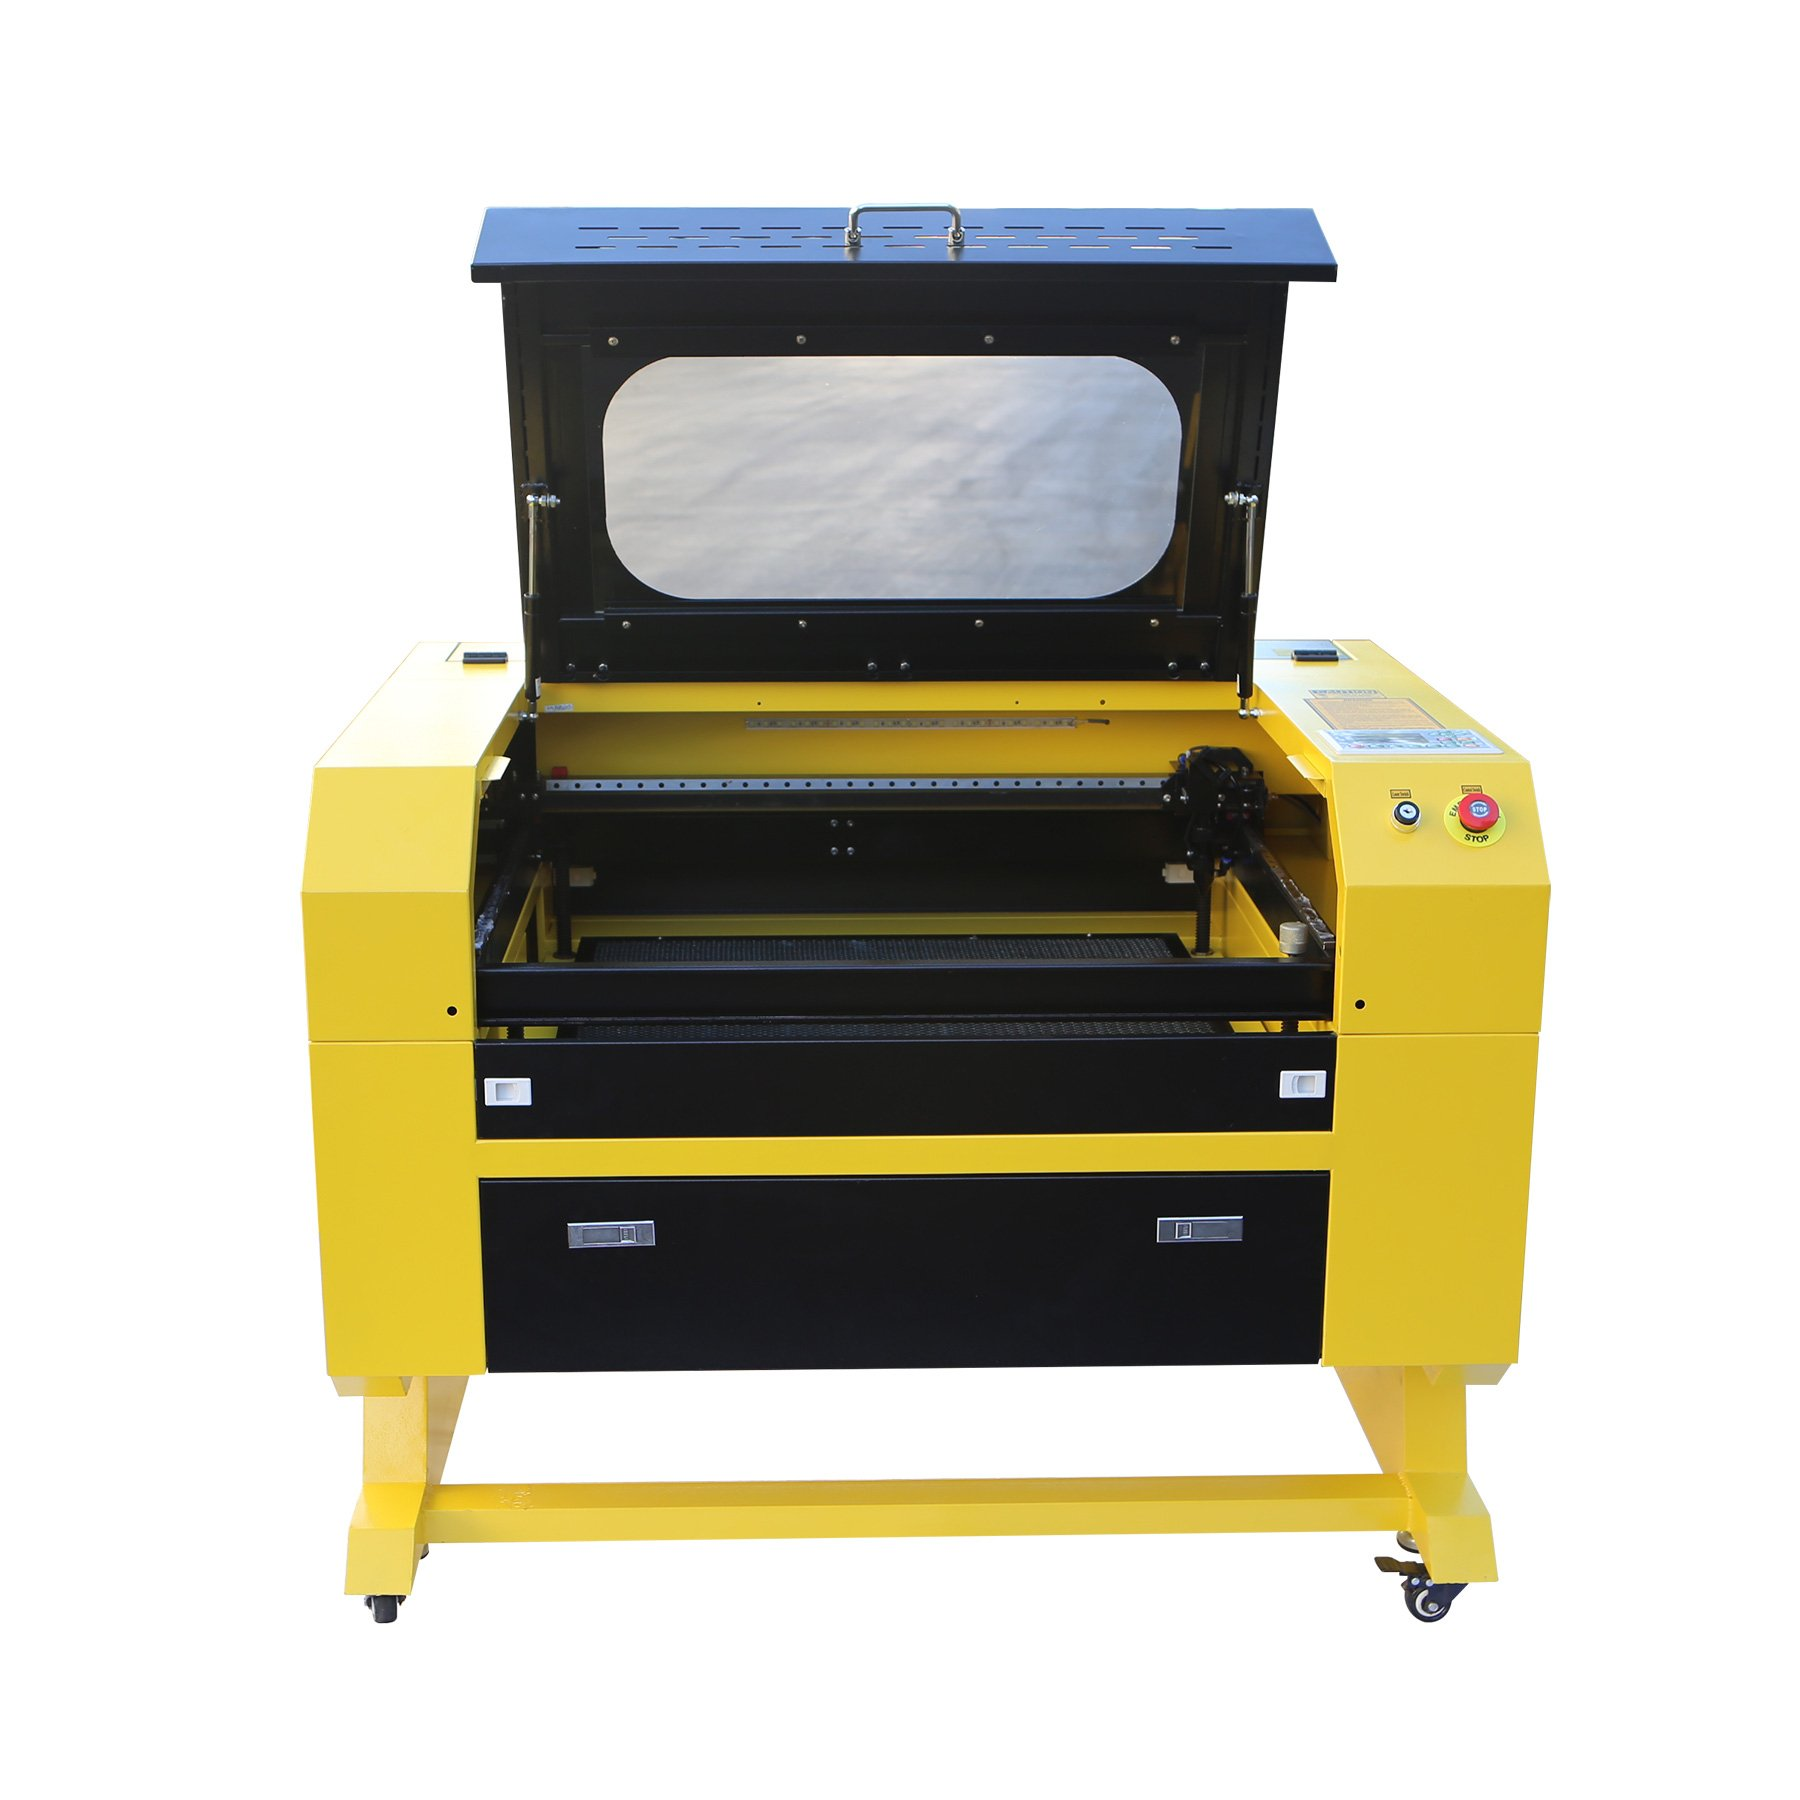 Orion Motor Tech 60W CO2 Laser Engraver Cutter Cutting Engraving Machine 20'' x 28'' with USB Port